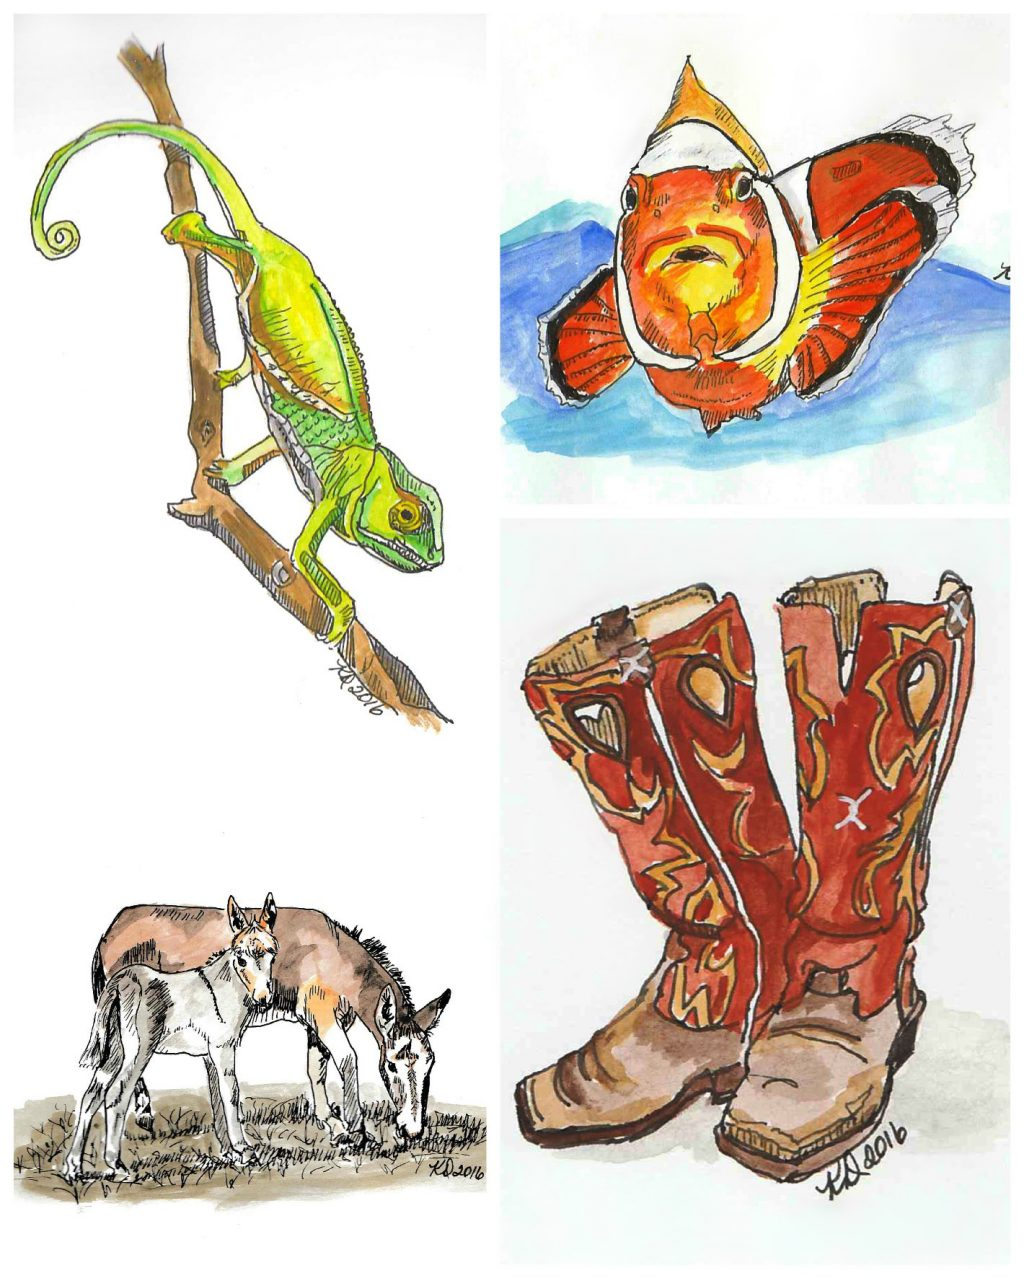 Doodlewash and watercolor sketches by KD Huff of chameleon, goldfish, horses, and cowboy boots